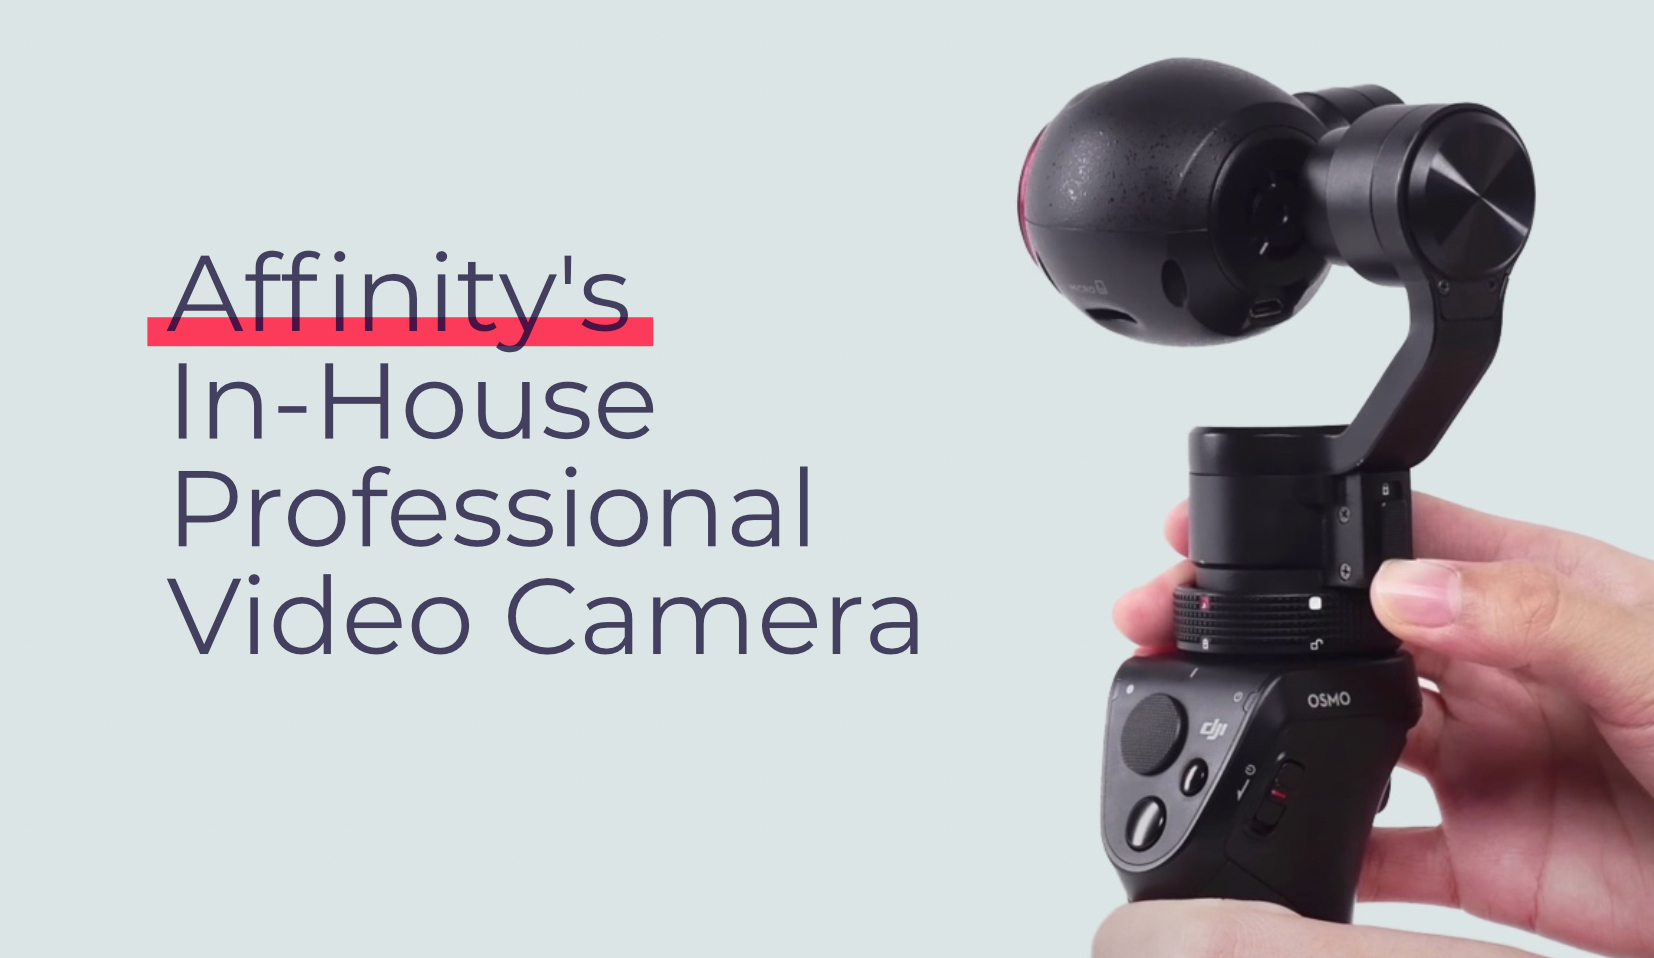 Our in-house videography tool